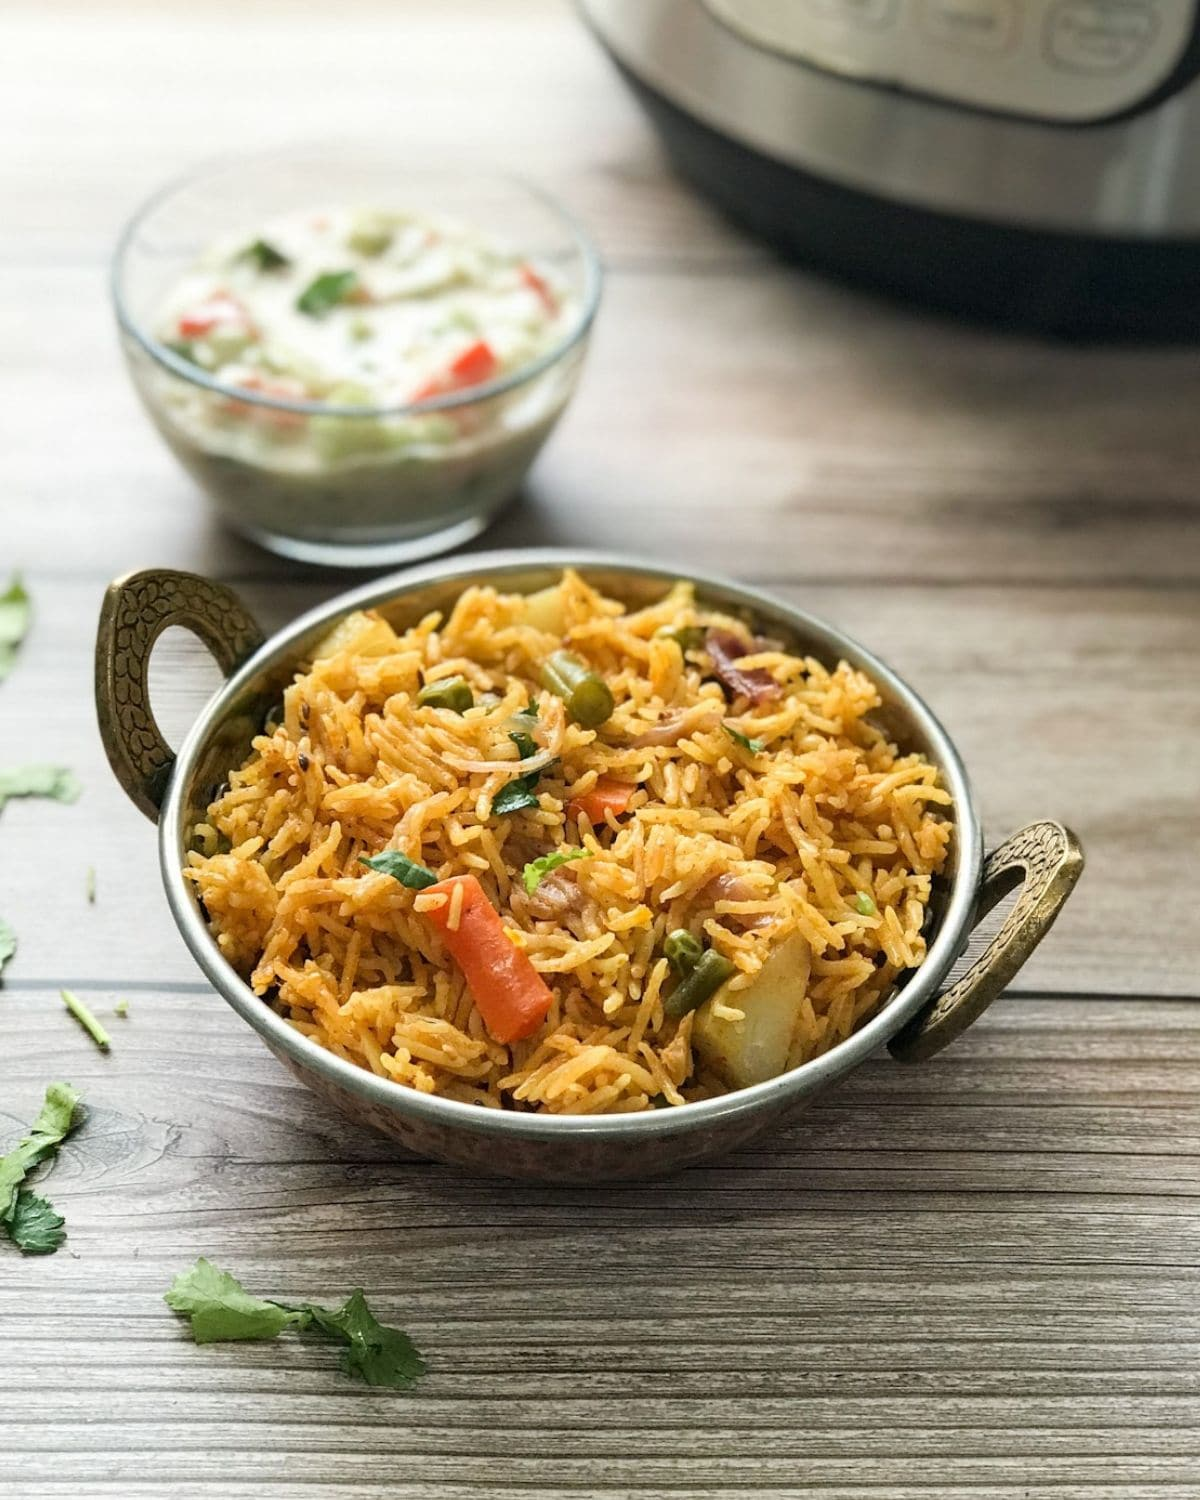 A copper bowl is with vegetable biryani over the table